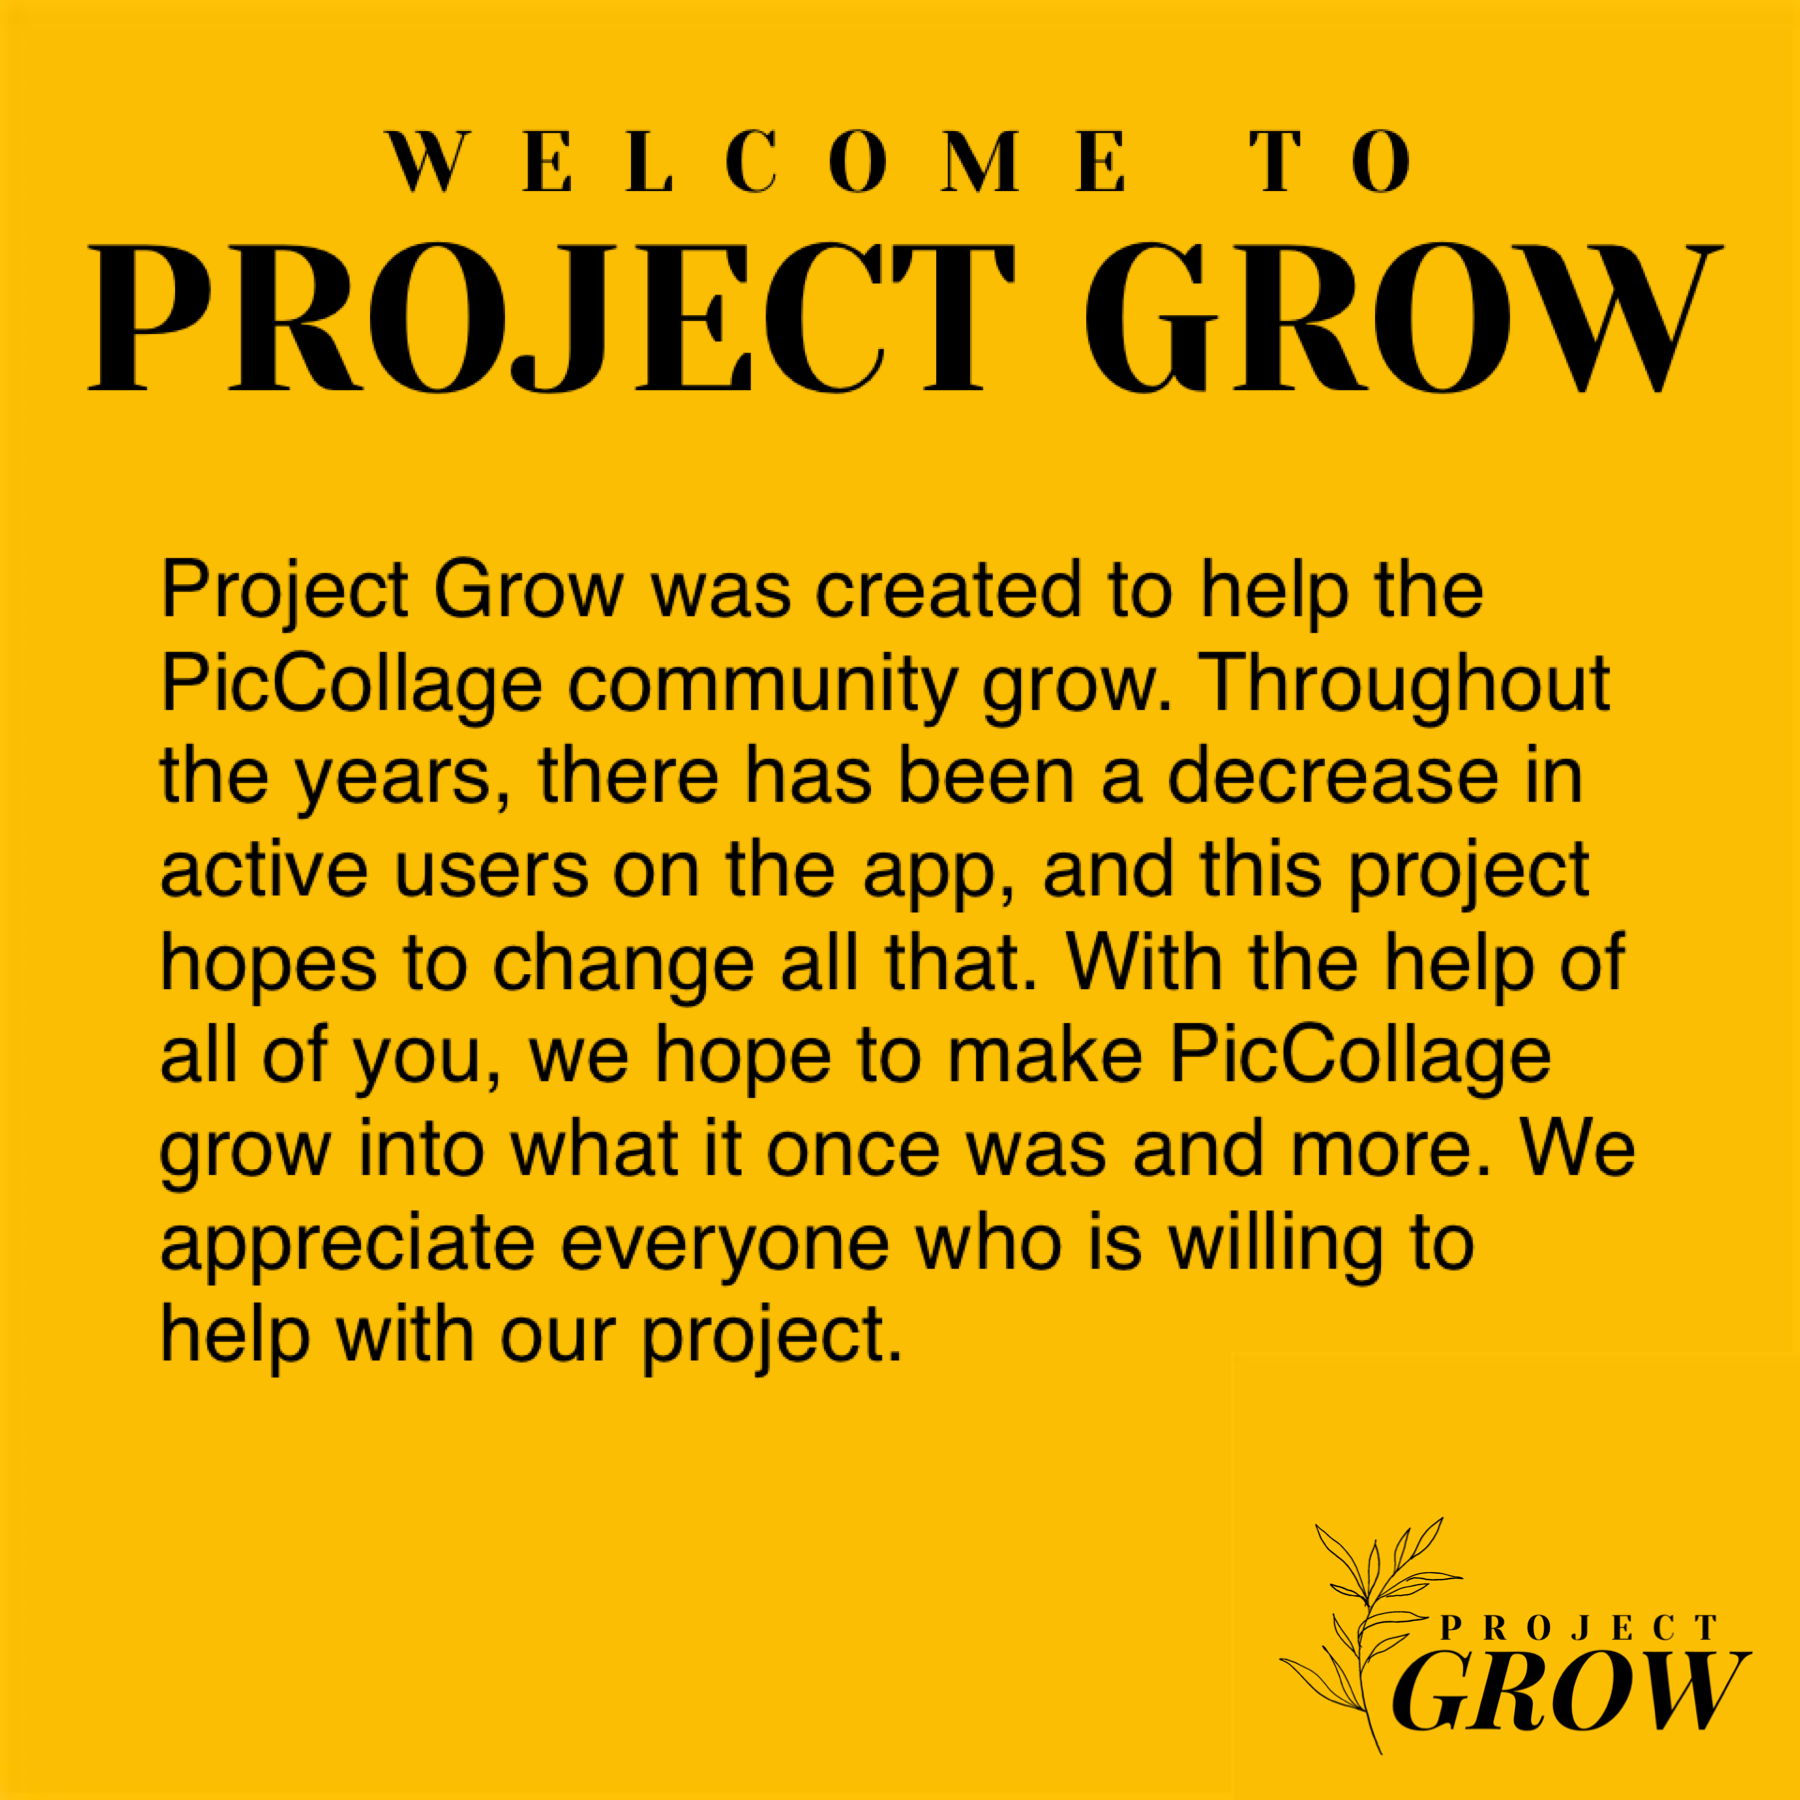 || PROJECT GROW ||